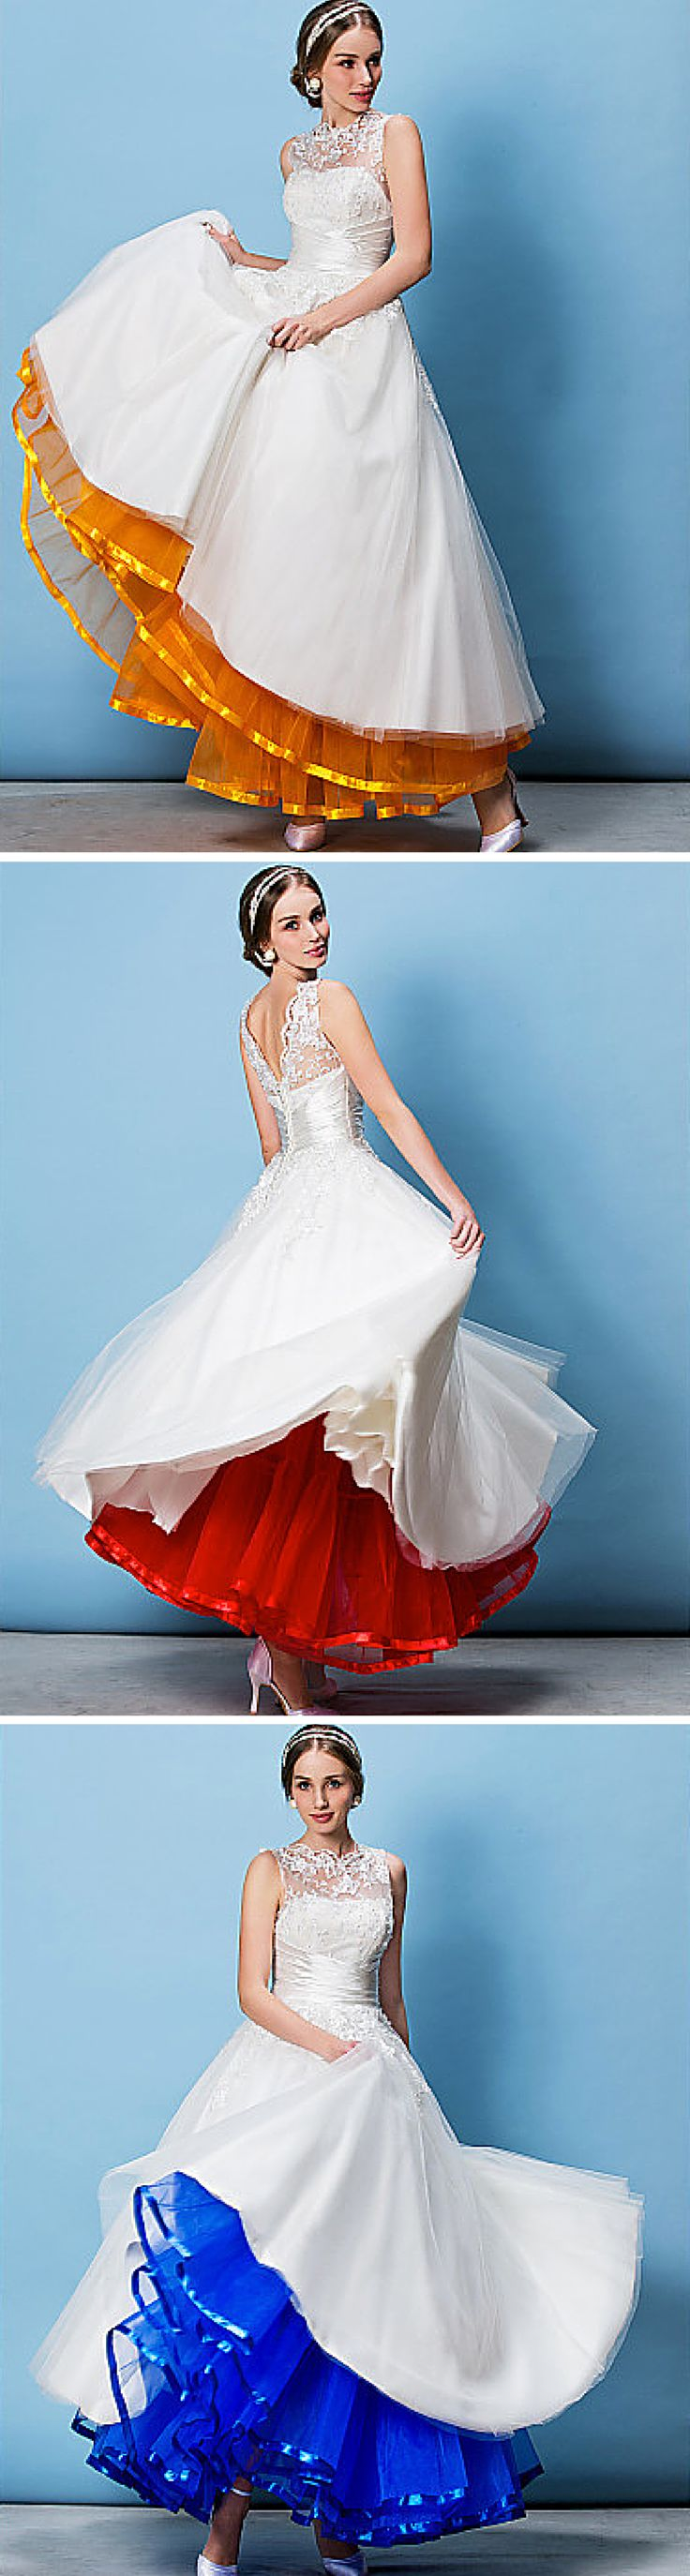 A pretty petticoat made for twirling!